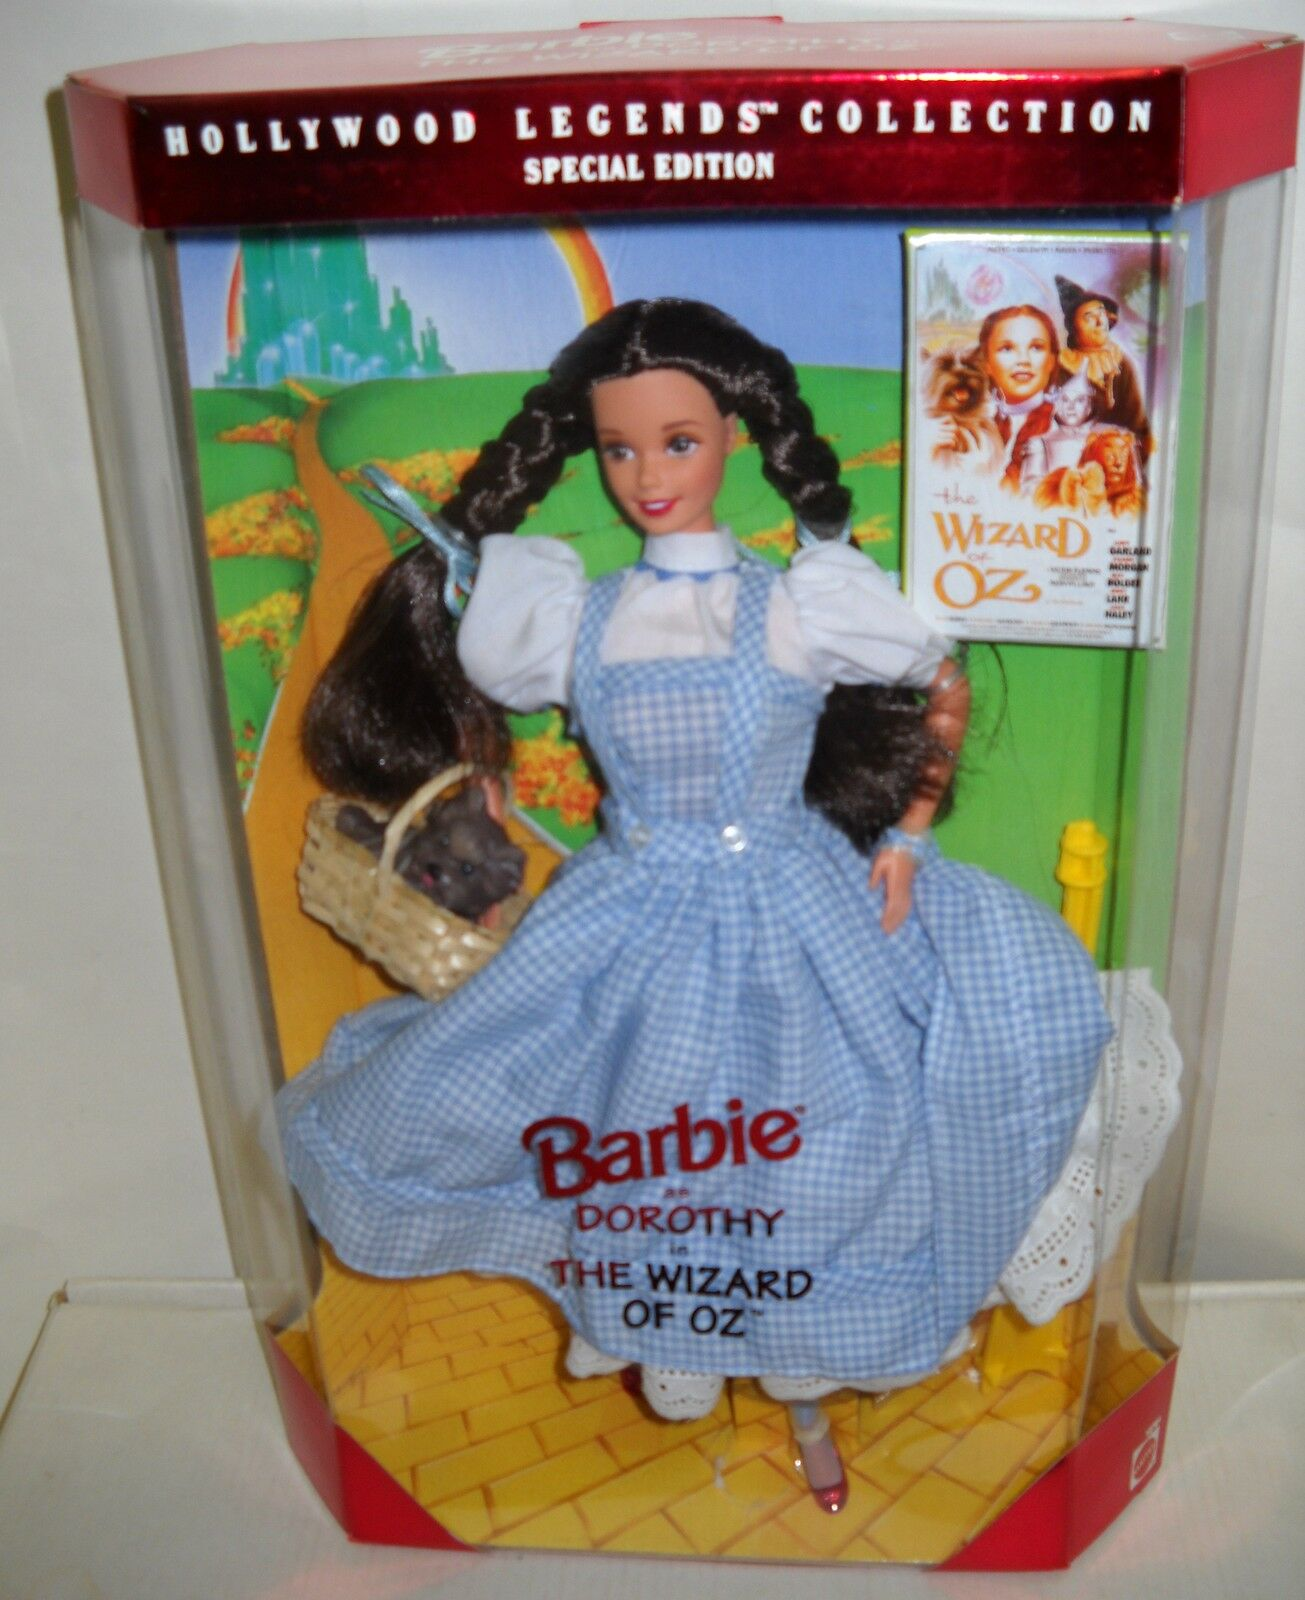 Nunca quitado de la Caja Mattel Hollywood Legends Barbie como Dorojohy de El Mago de Oz